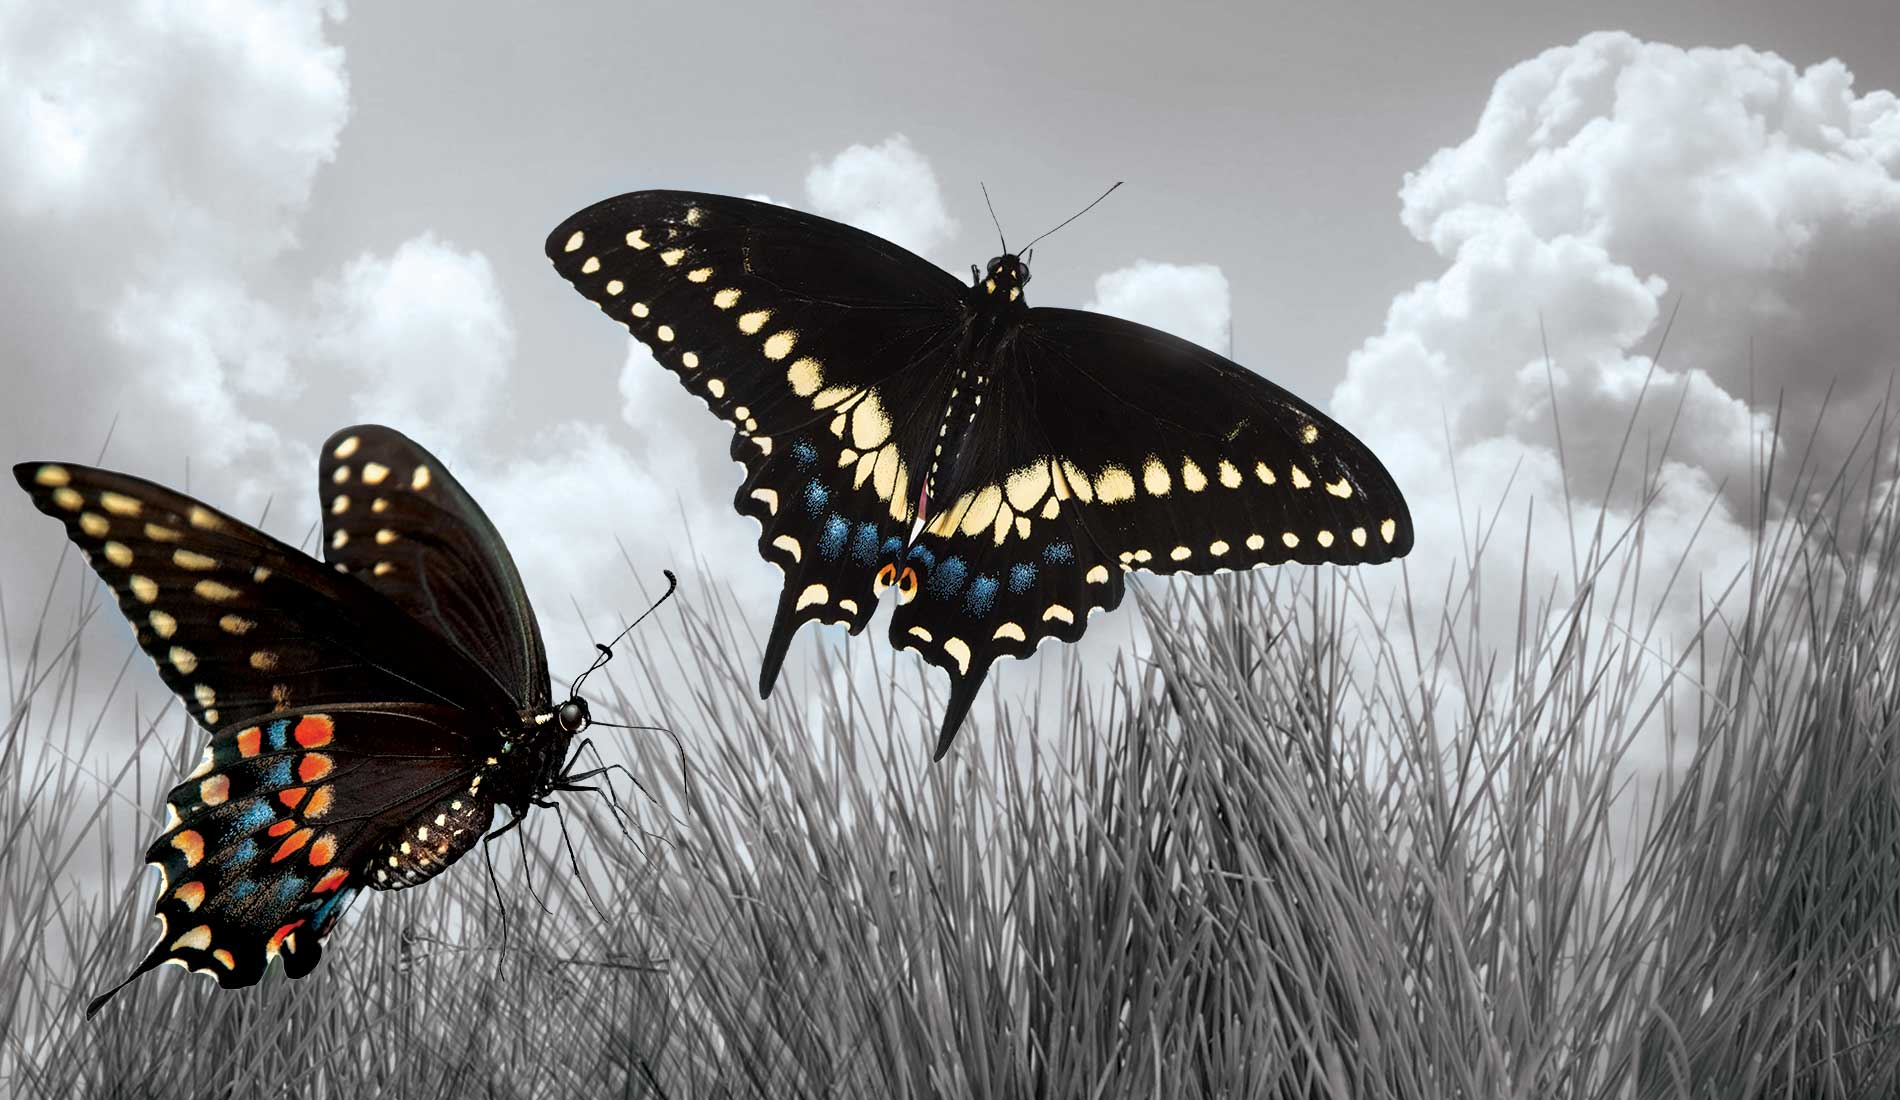 Color pictures of butterflies flying in a grass field.